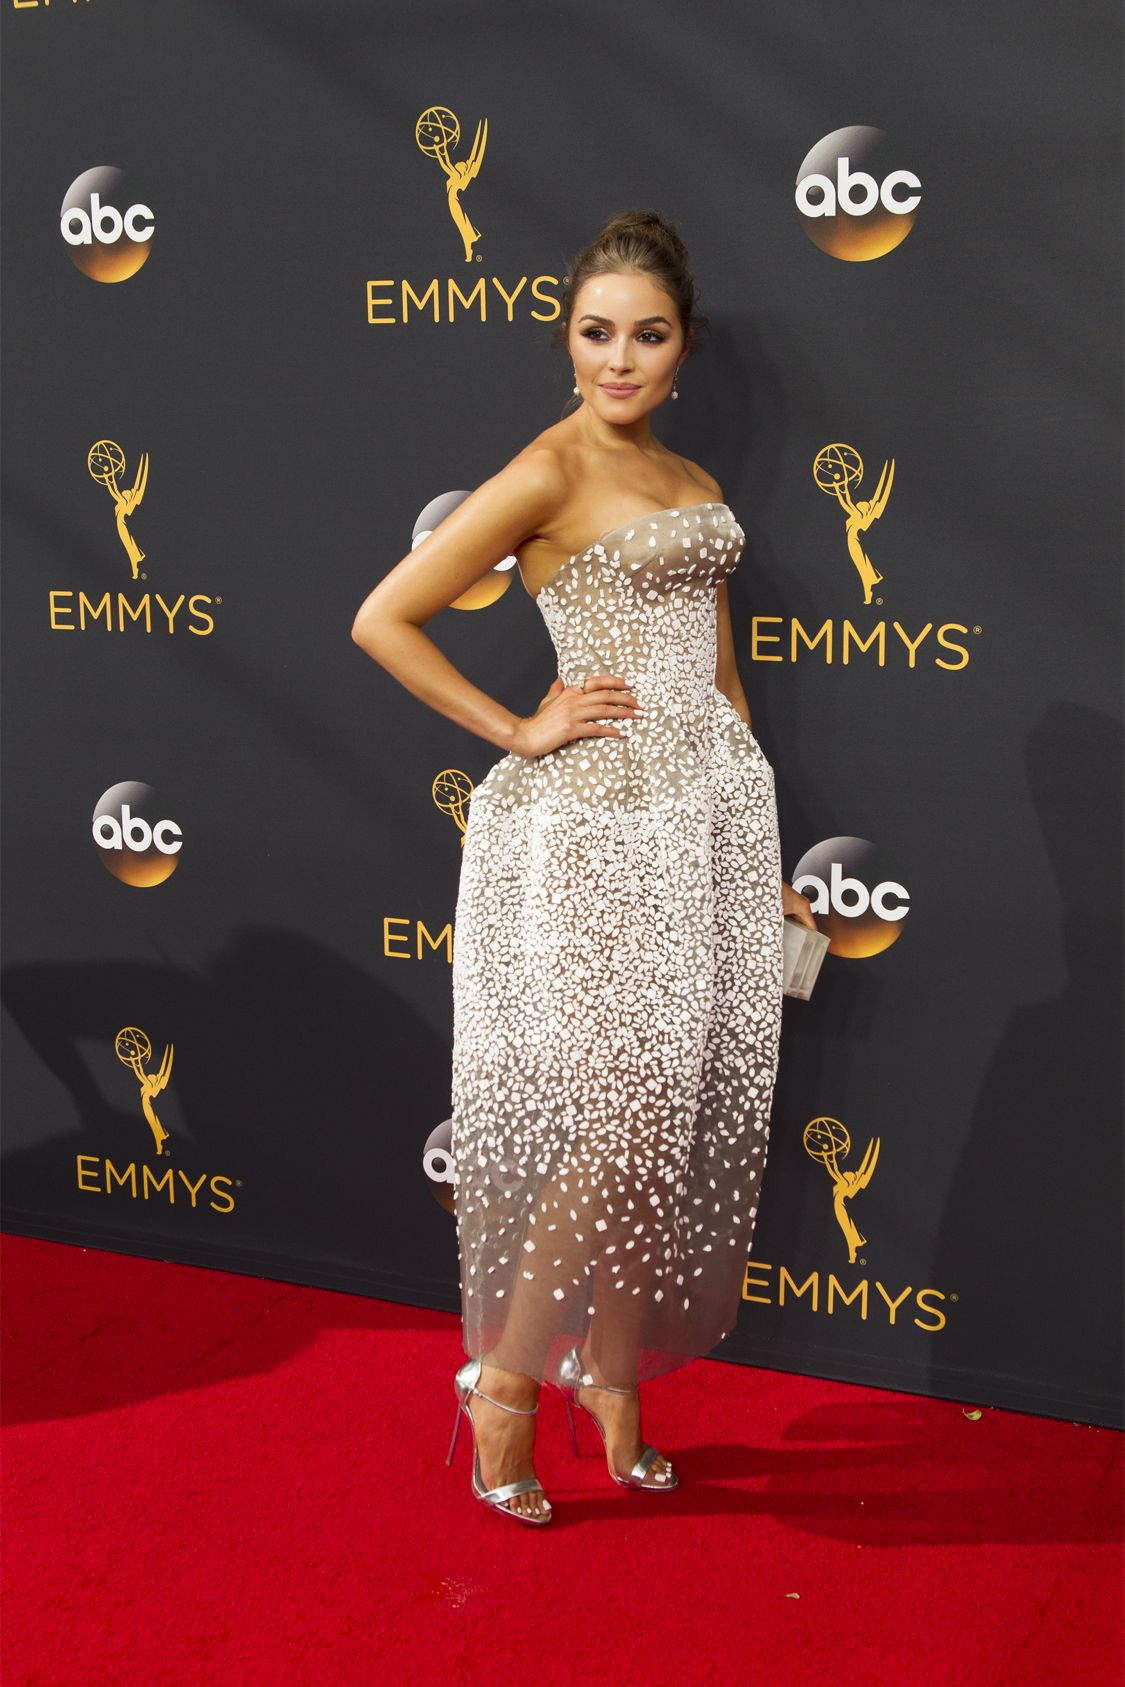 """THE 68TH EMMY(r) AWARDS - """"The 68th Emmy Awards"""" broadcasts live from The Microsoft Theater in Los Angeles, Sunday, September 18 (7:00-11:00 p.m. EDT/4:00-8:00 p.m. PDT), on ABC and is hosted by Jimmy Kimmel. (ABC/Rick Rowell) OLIVIA CULPO"""